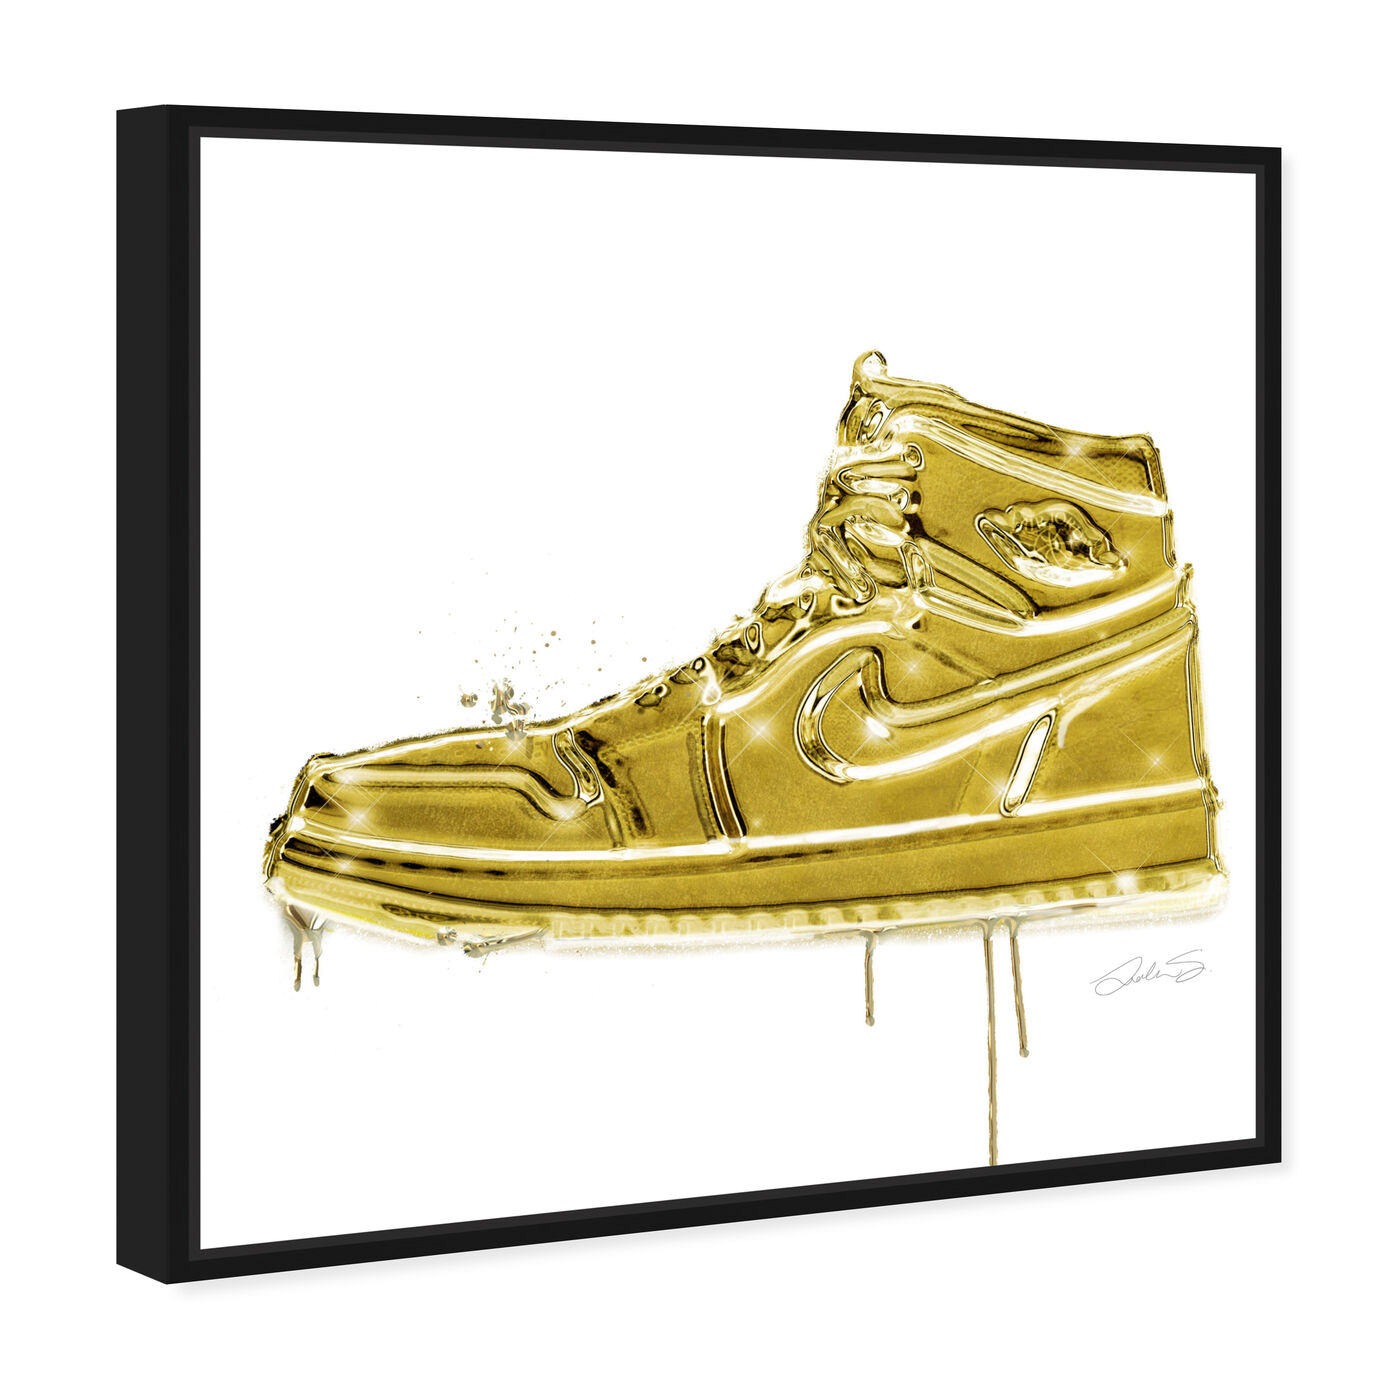 Angled view of Lola Air Golden featuring fashion and glam and shoes art.